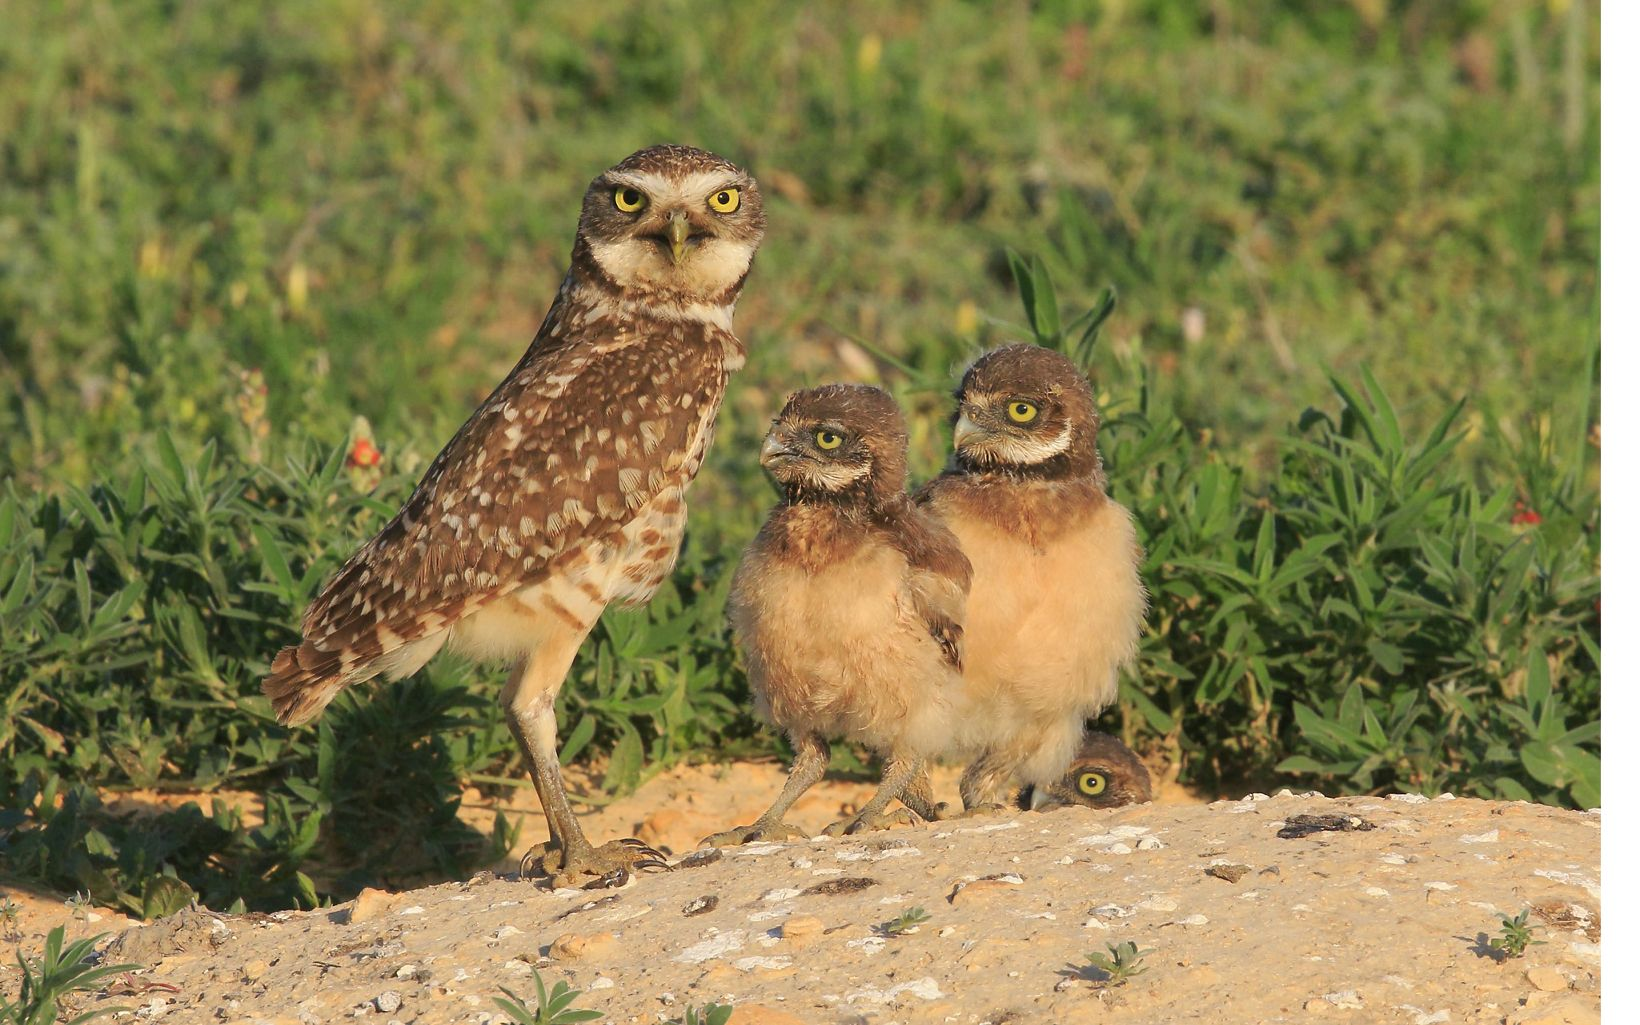 a skinny owl with two chicks